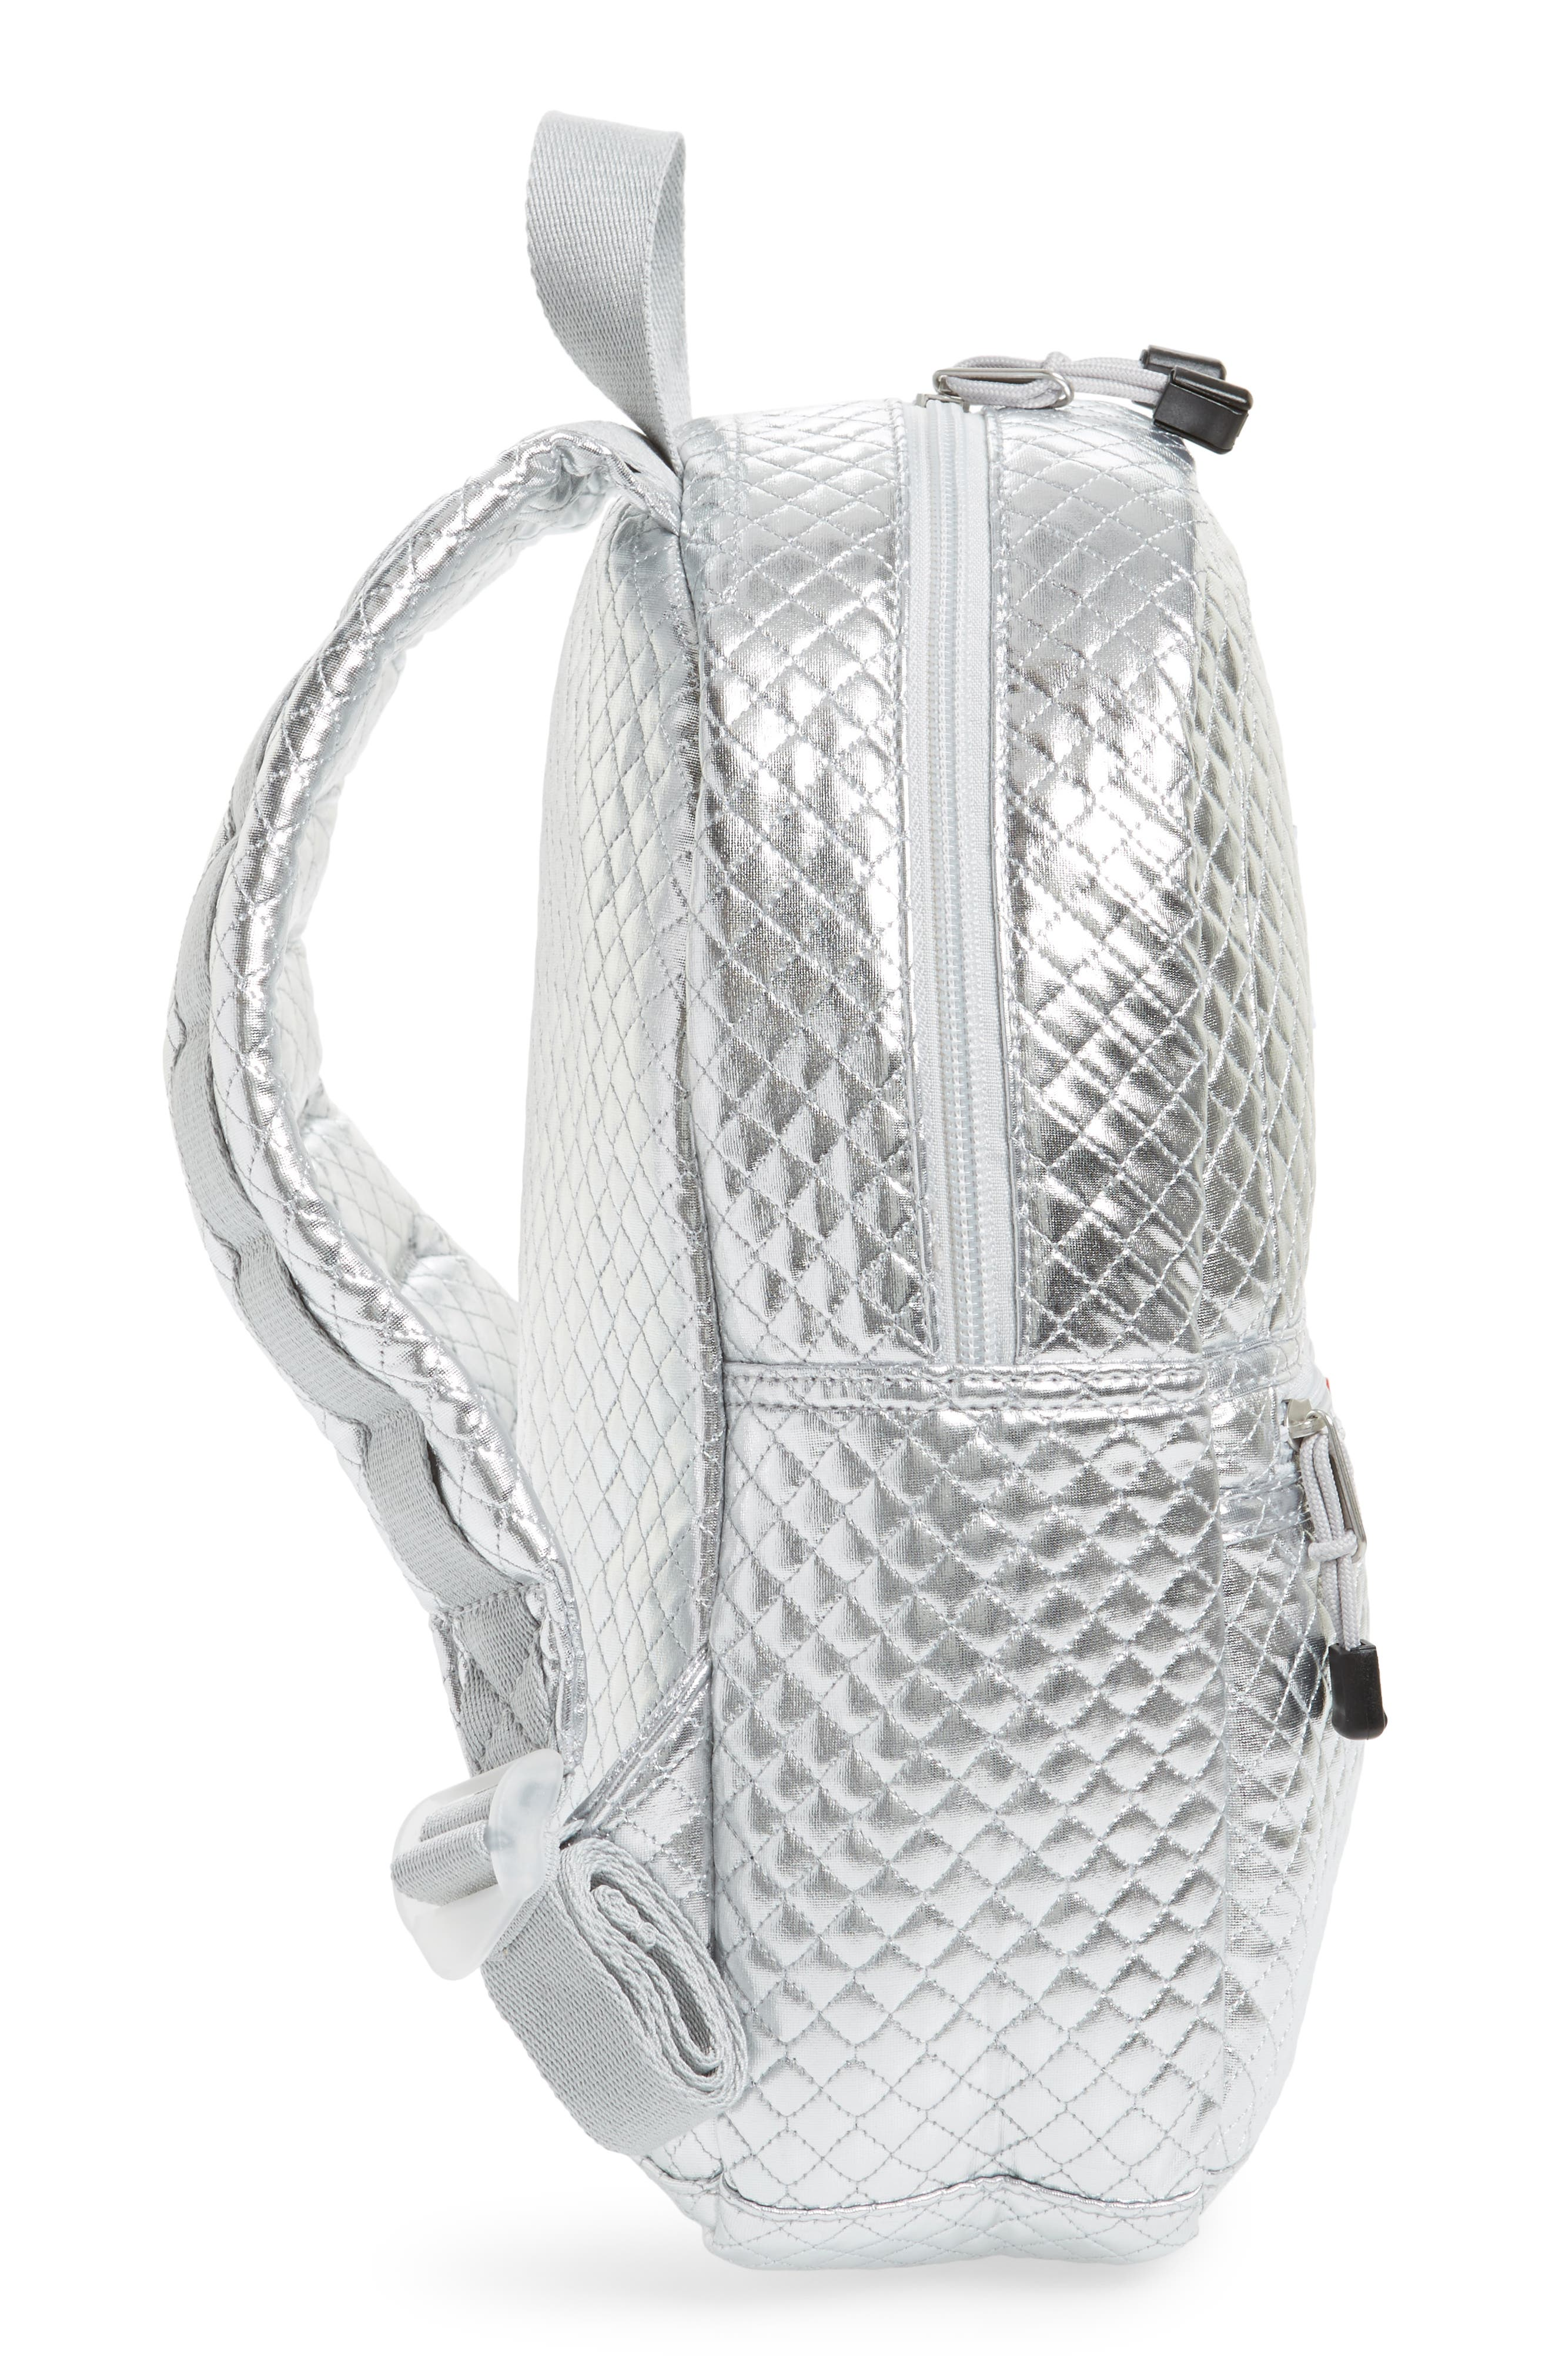 Flatbush Mini Kane Backpack,                             Alternate thumbnail 5, color,                             Silver Quilted